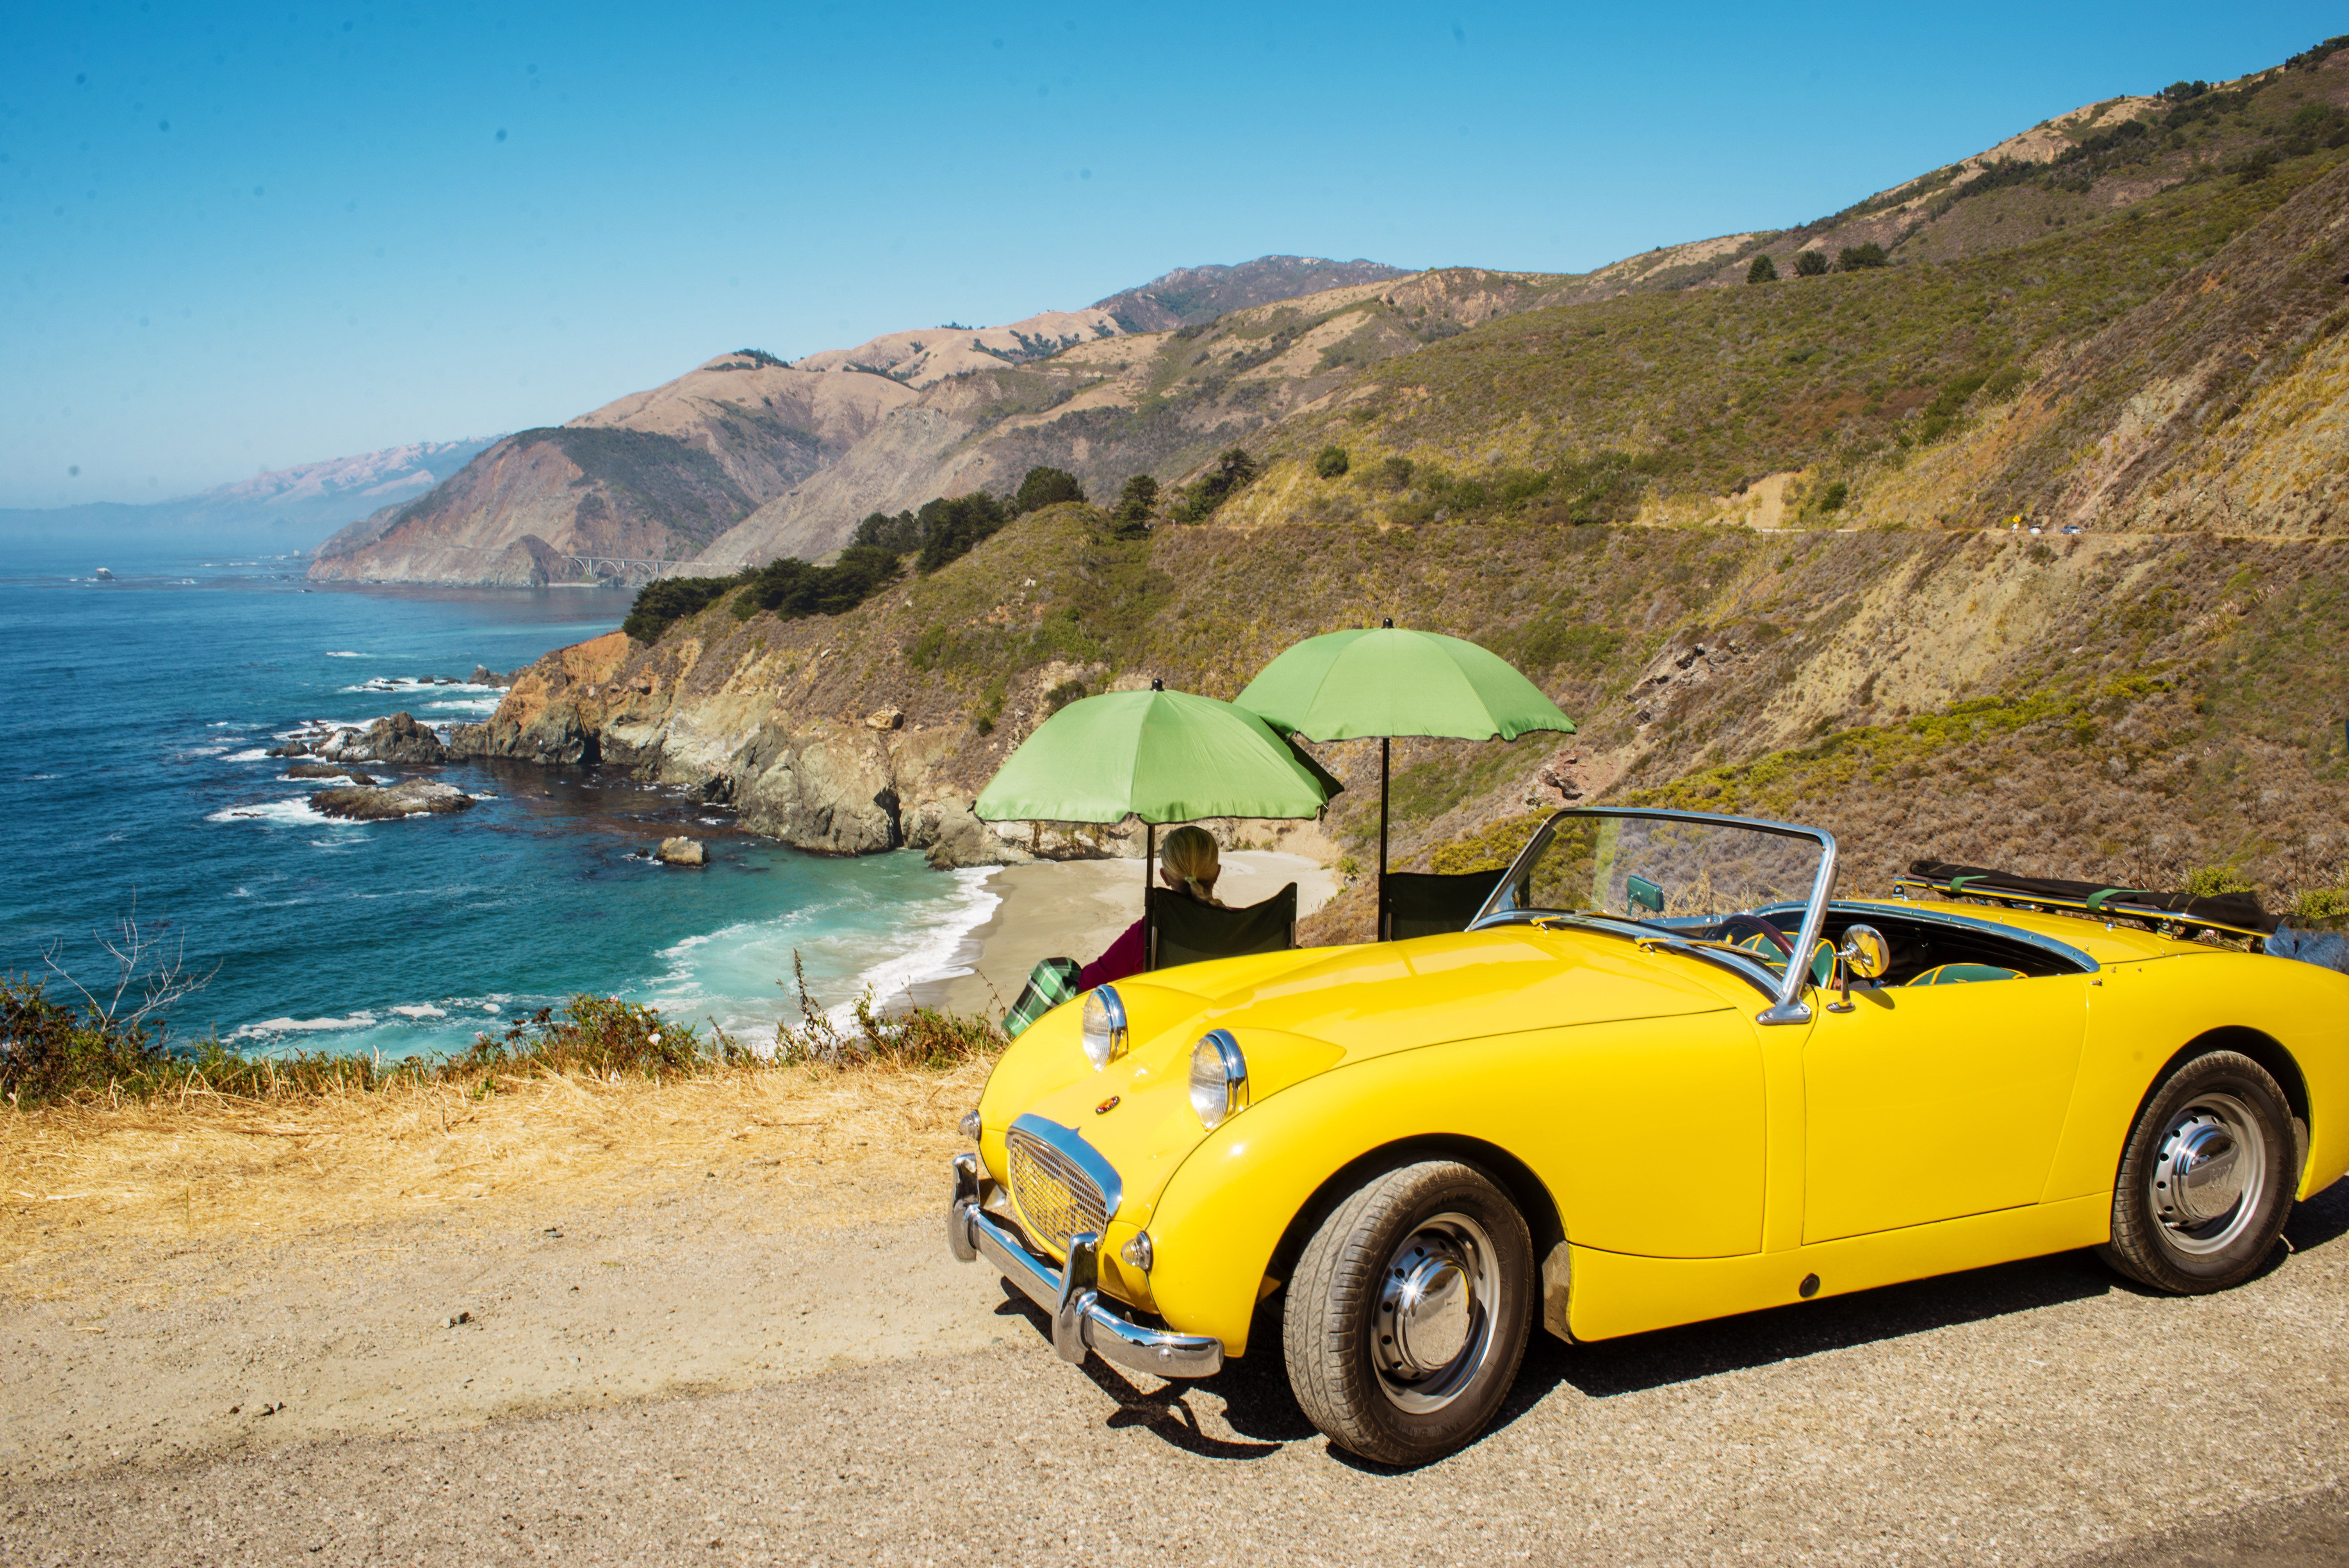 A classic car parked and riders taking in the view along Highway 1